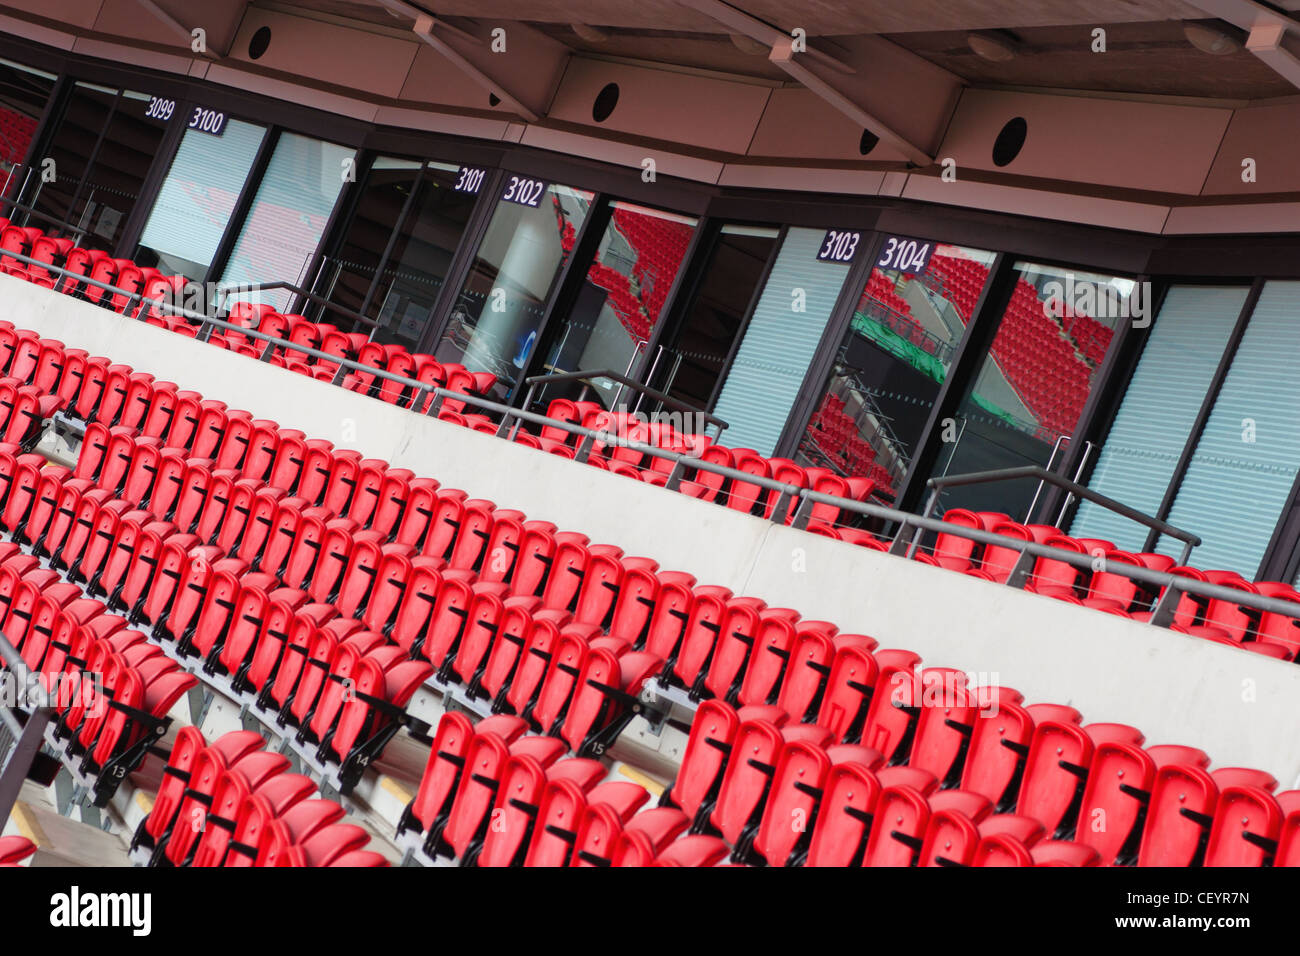 Corporate Hospitality Boxes at a football stadium representing all that is wrong with modern football. - Stock Image